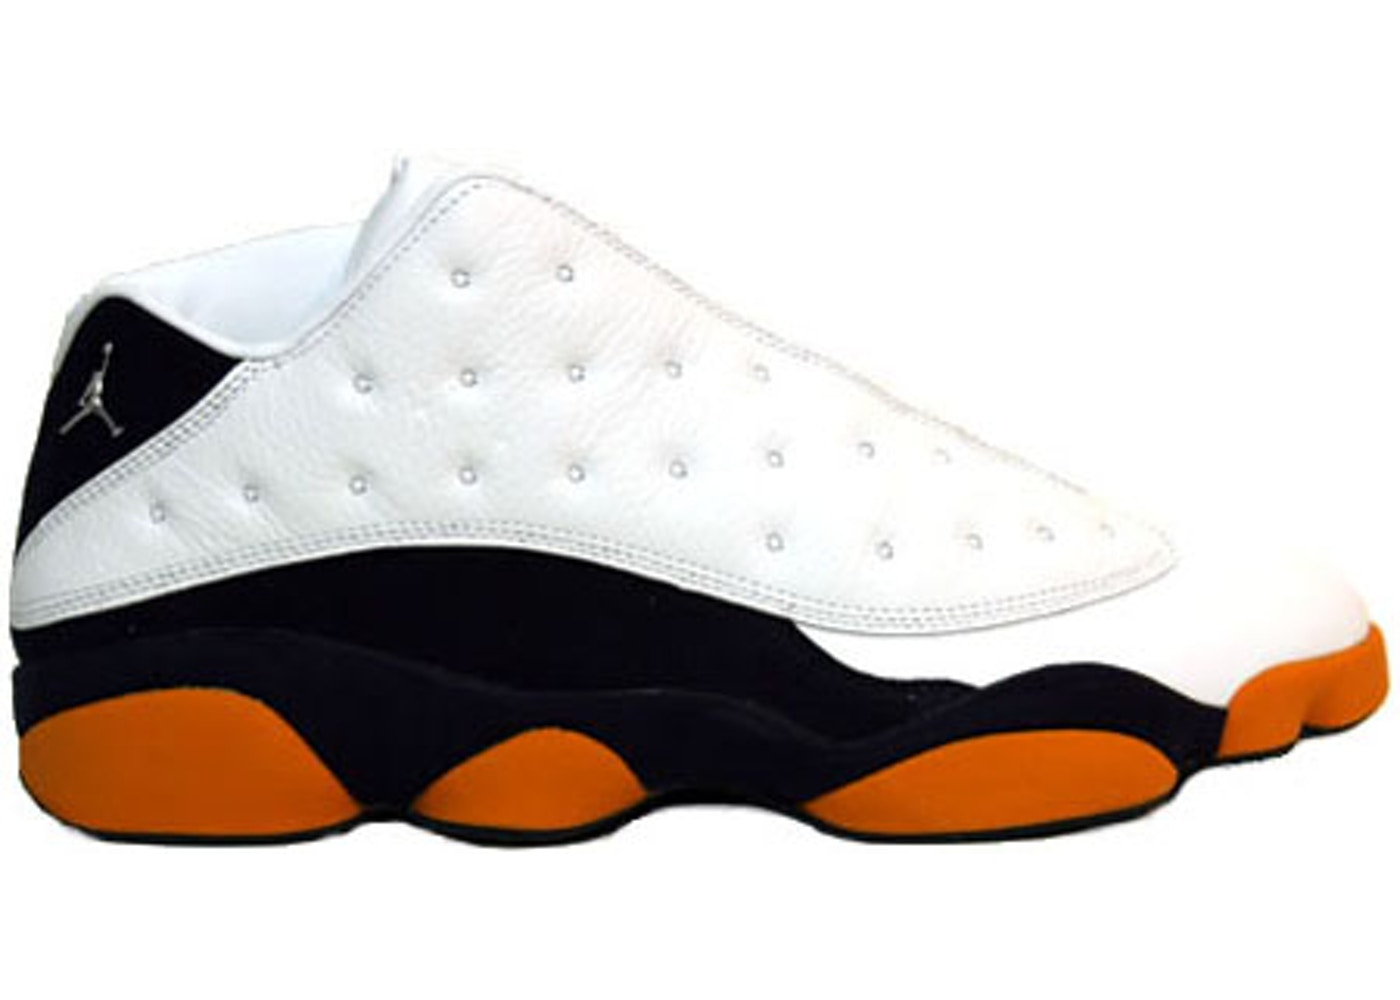 ナイキ ジョーダン JORDAN サーティーン スニーカー 【 13 RETRO LOW CUSE WHITE METALLIC SILVEROBSIDIANORANGE FLASH 】 メンズ